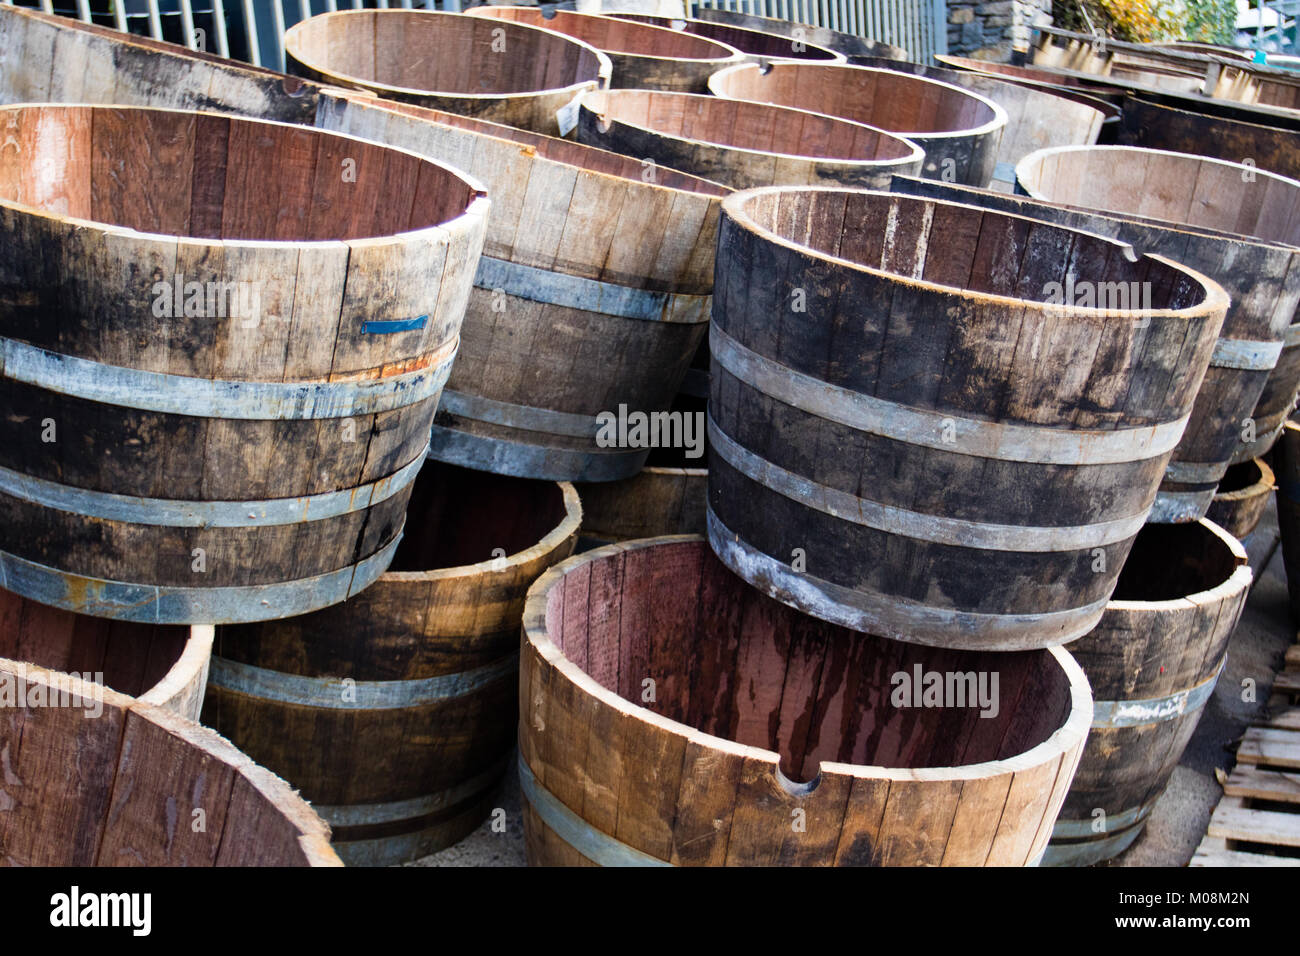 small wooden keg barrel stockfotos small wooden keg barrel bilder alamy. Black Bedroom Furniture Sets. Home Design Ideas